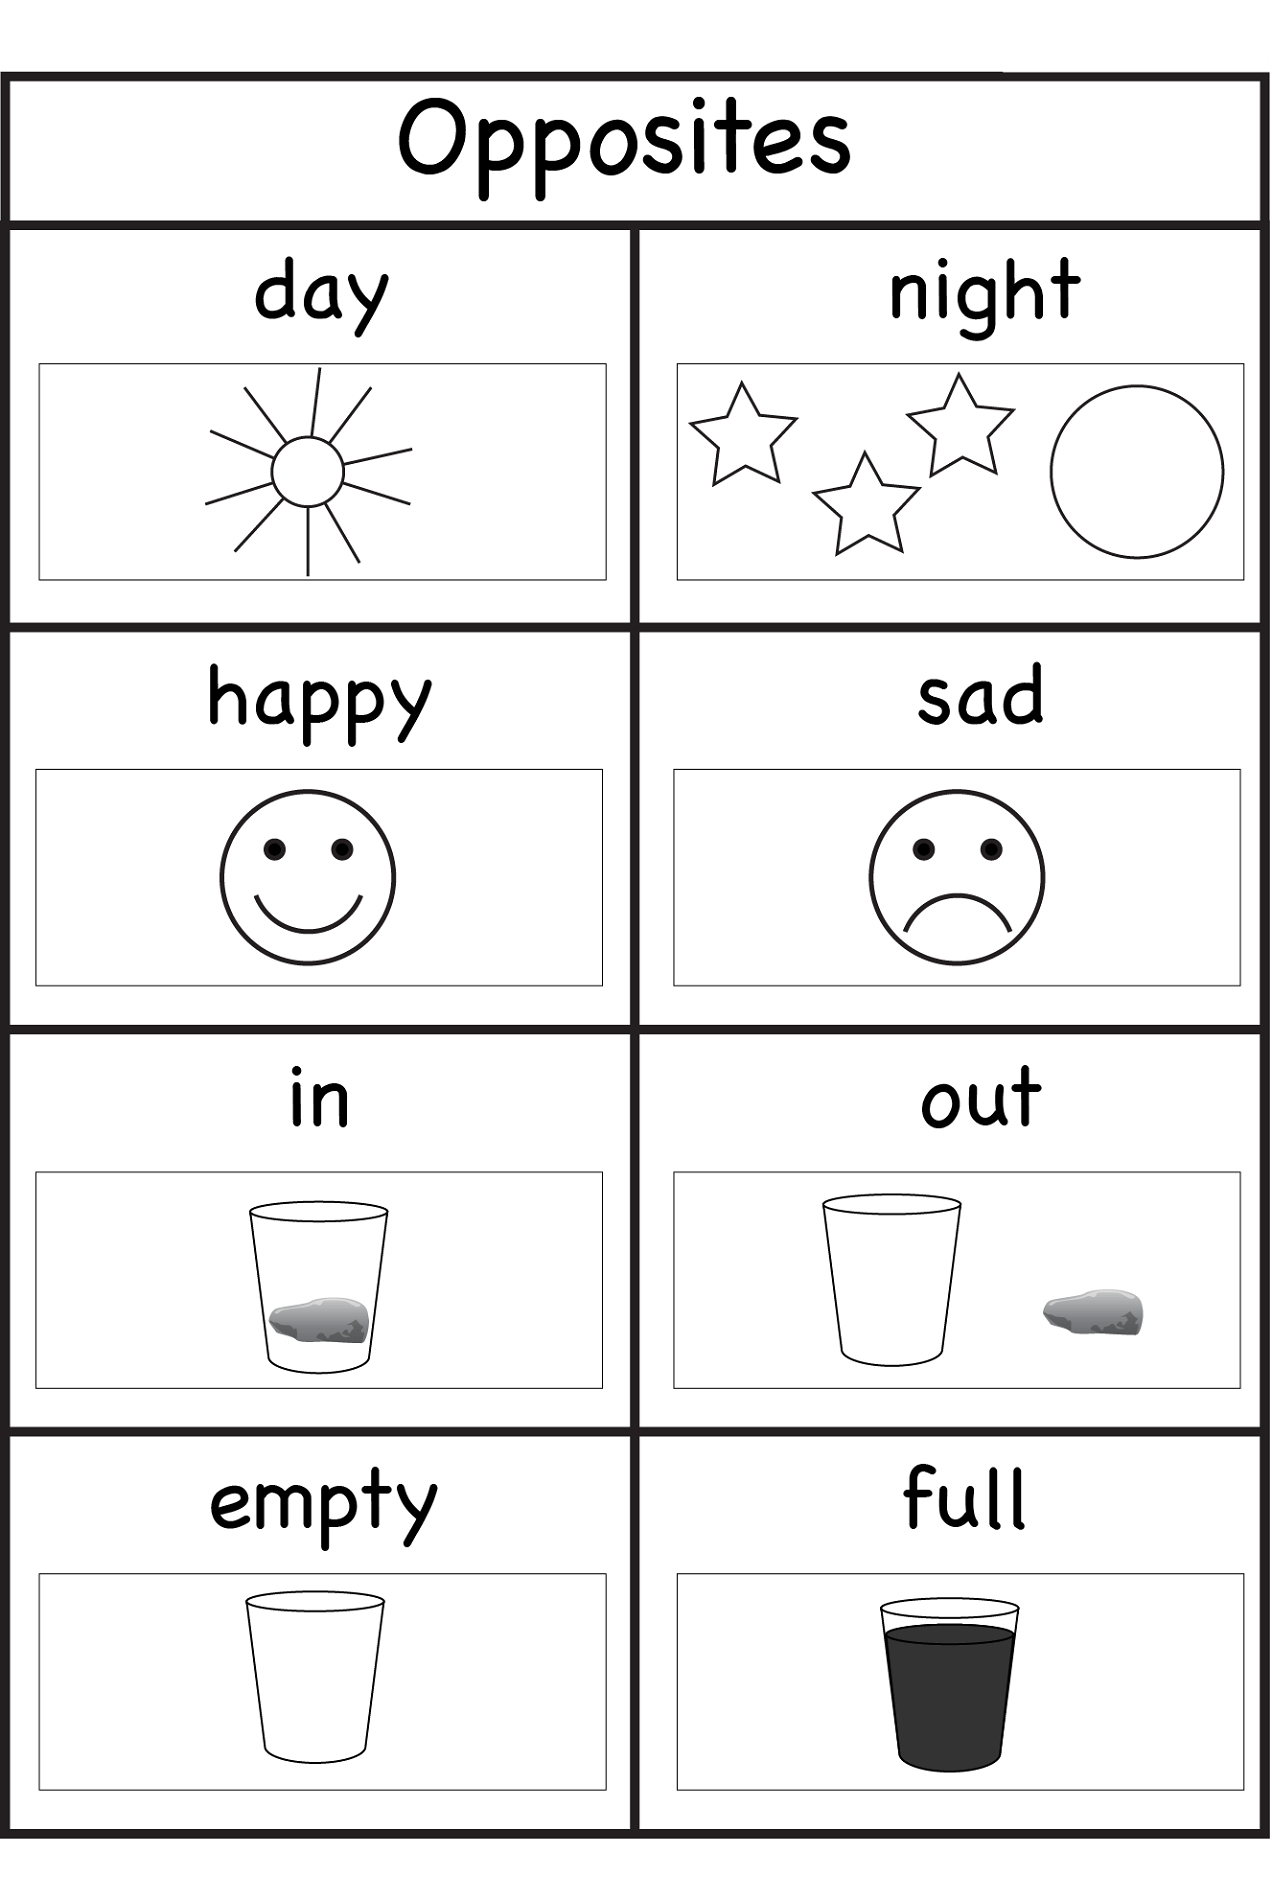 Printable Worksheets For 3 Year Olds That Are Astounding inside Letter B Worksheets For 3 Year Olds